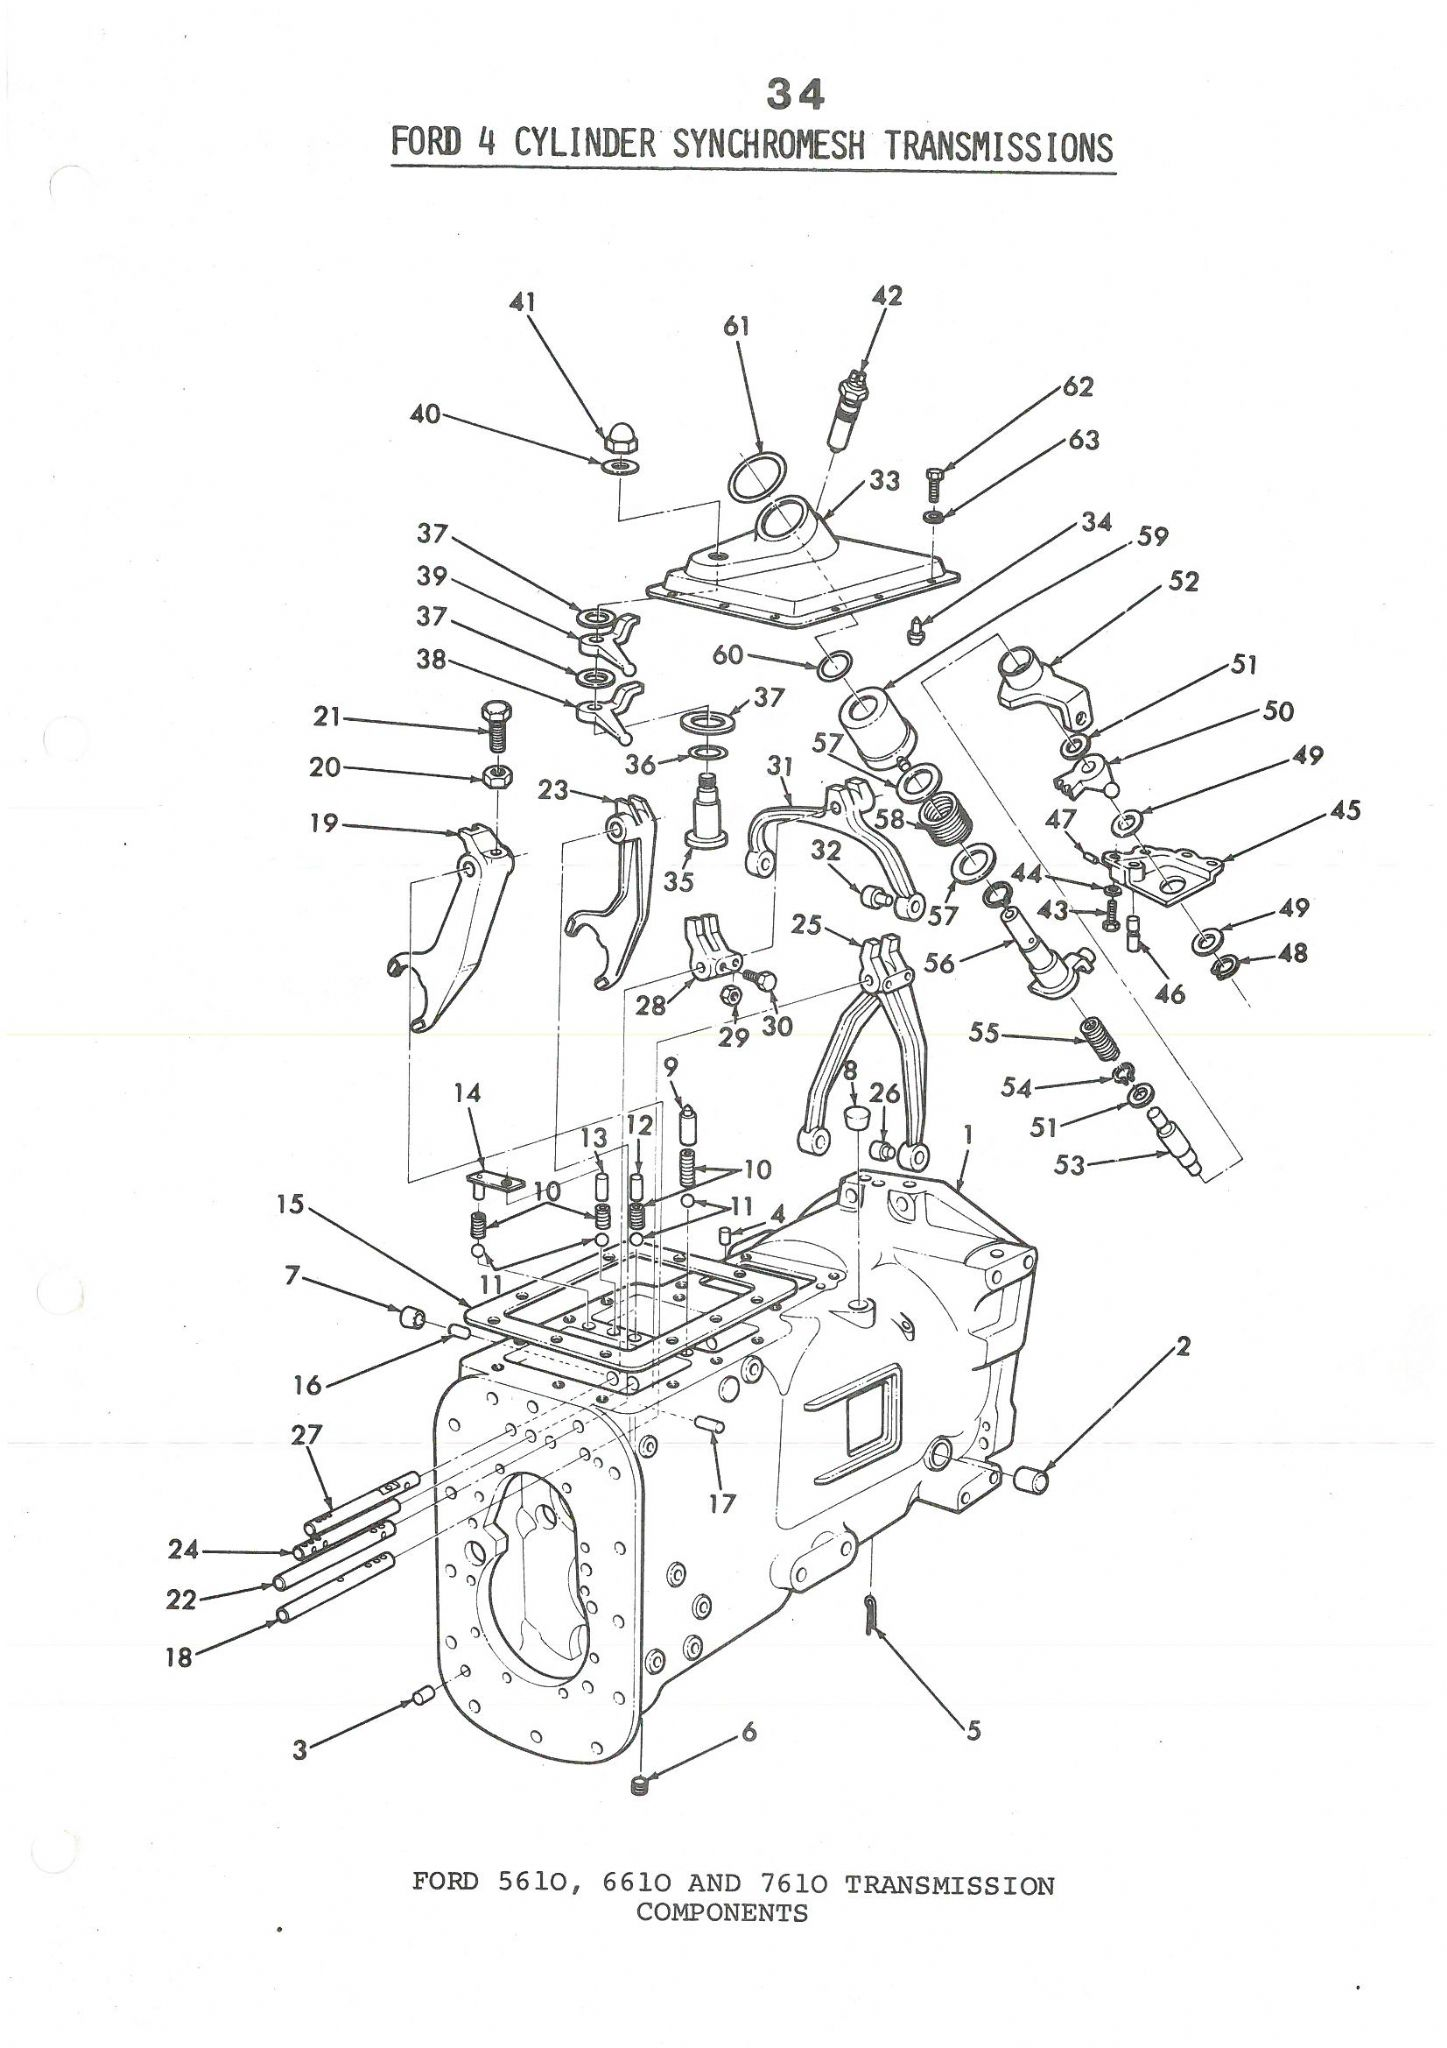 ford manual transmission diagram with Ford Tractor 2610 3610 4110 4610 5610 6610 6710 7610 7710 Training Workshop Service Manual 15623 P on Flathead drawings trans furthermore P 0900c1528006293a together with Ford Transit 2 0 Di Schematic also 2012 Dodge Van Transmission Problems additionally Honda Odyssey 3 5 Engine Timing Belt.